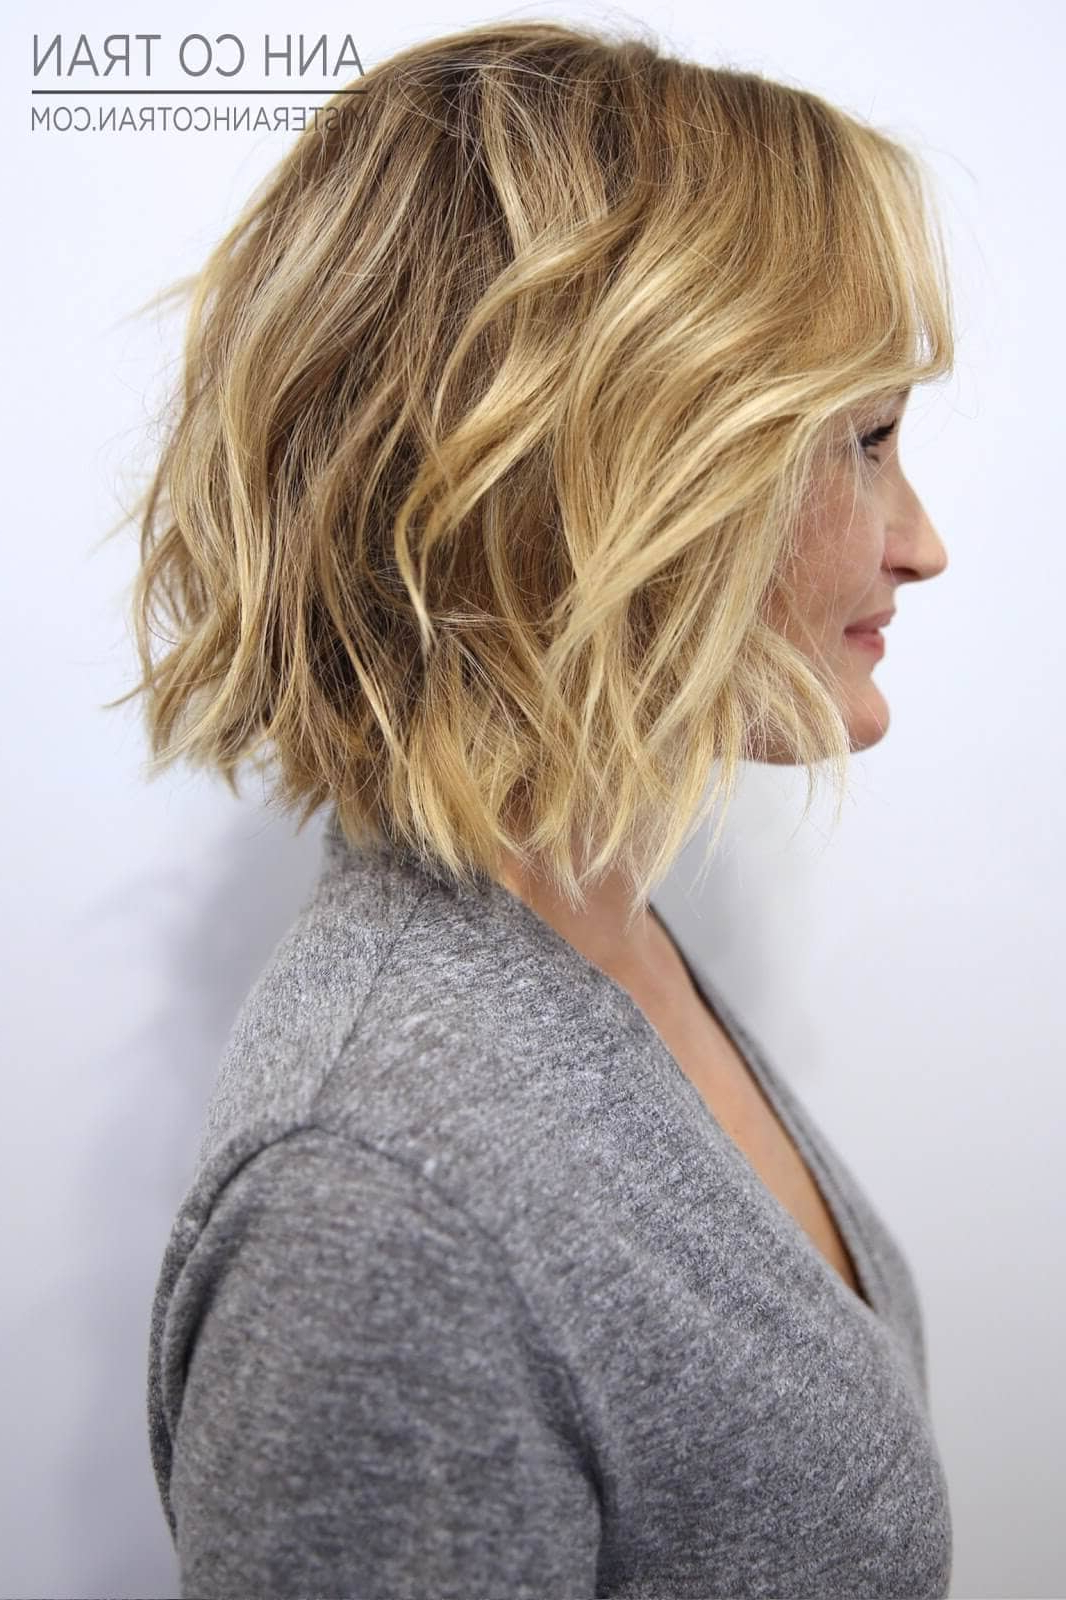 Preferred Loose Layers Hairstyles With Silver Highlights Throughout 50 Ways To Wear Short Hair With Bangs For A Fresh New Look (Gallery 16 of 20)